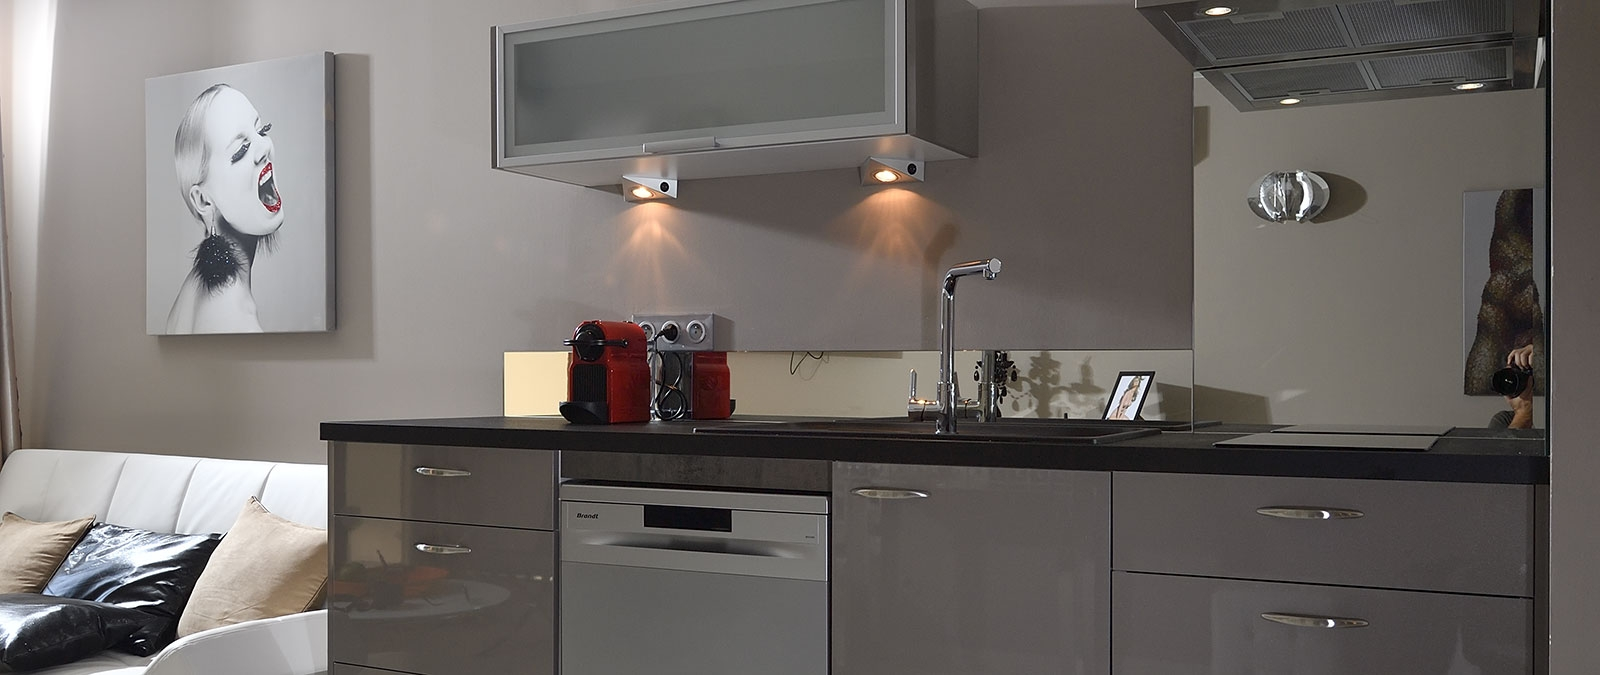 Kerylos studio flat rental with equipped kitchen